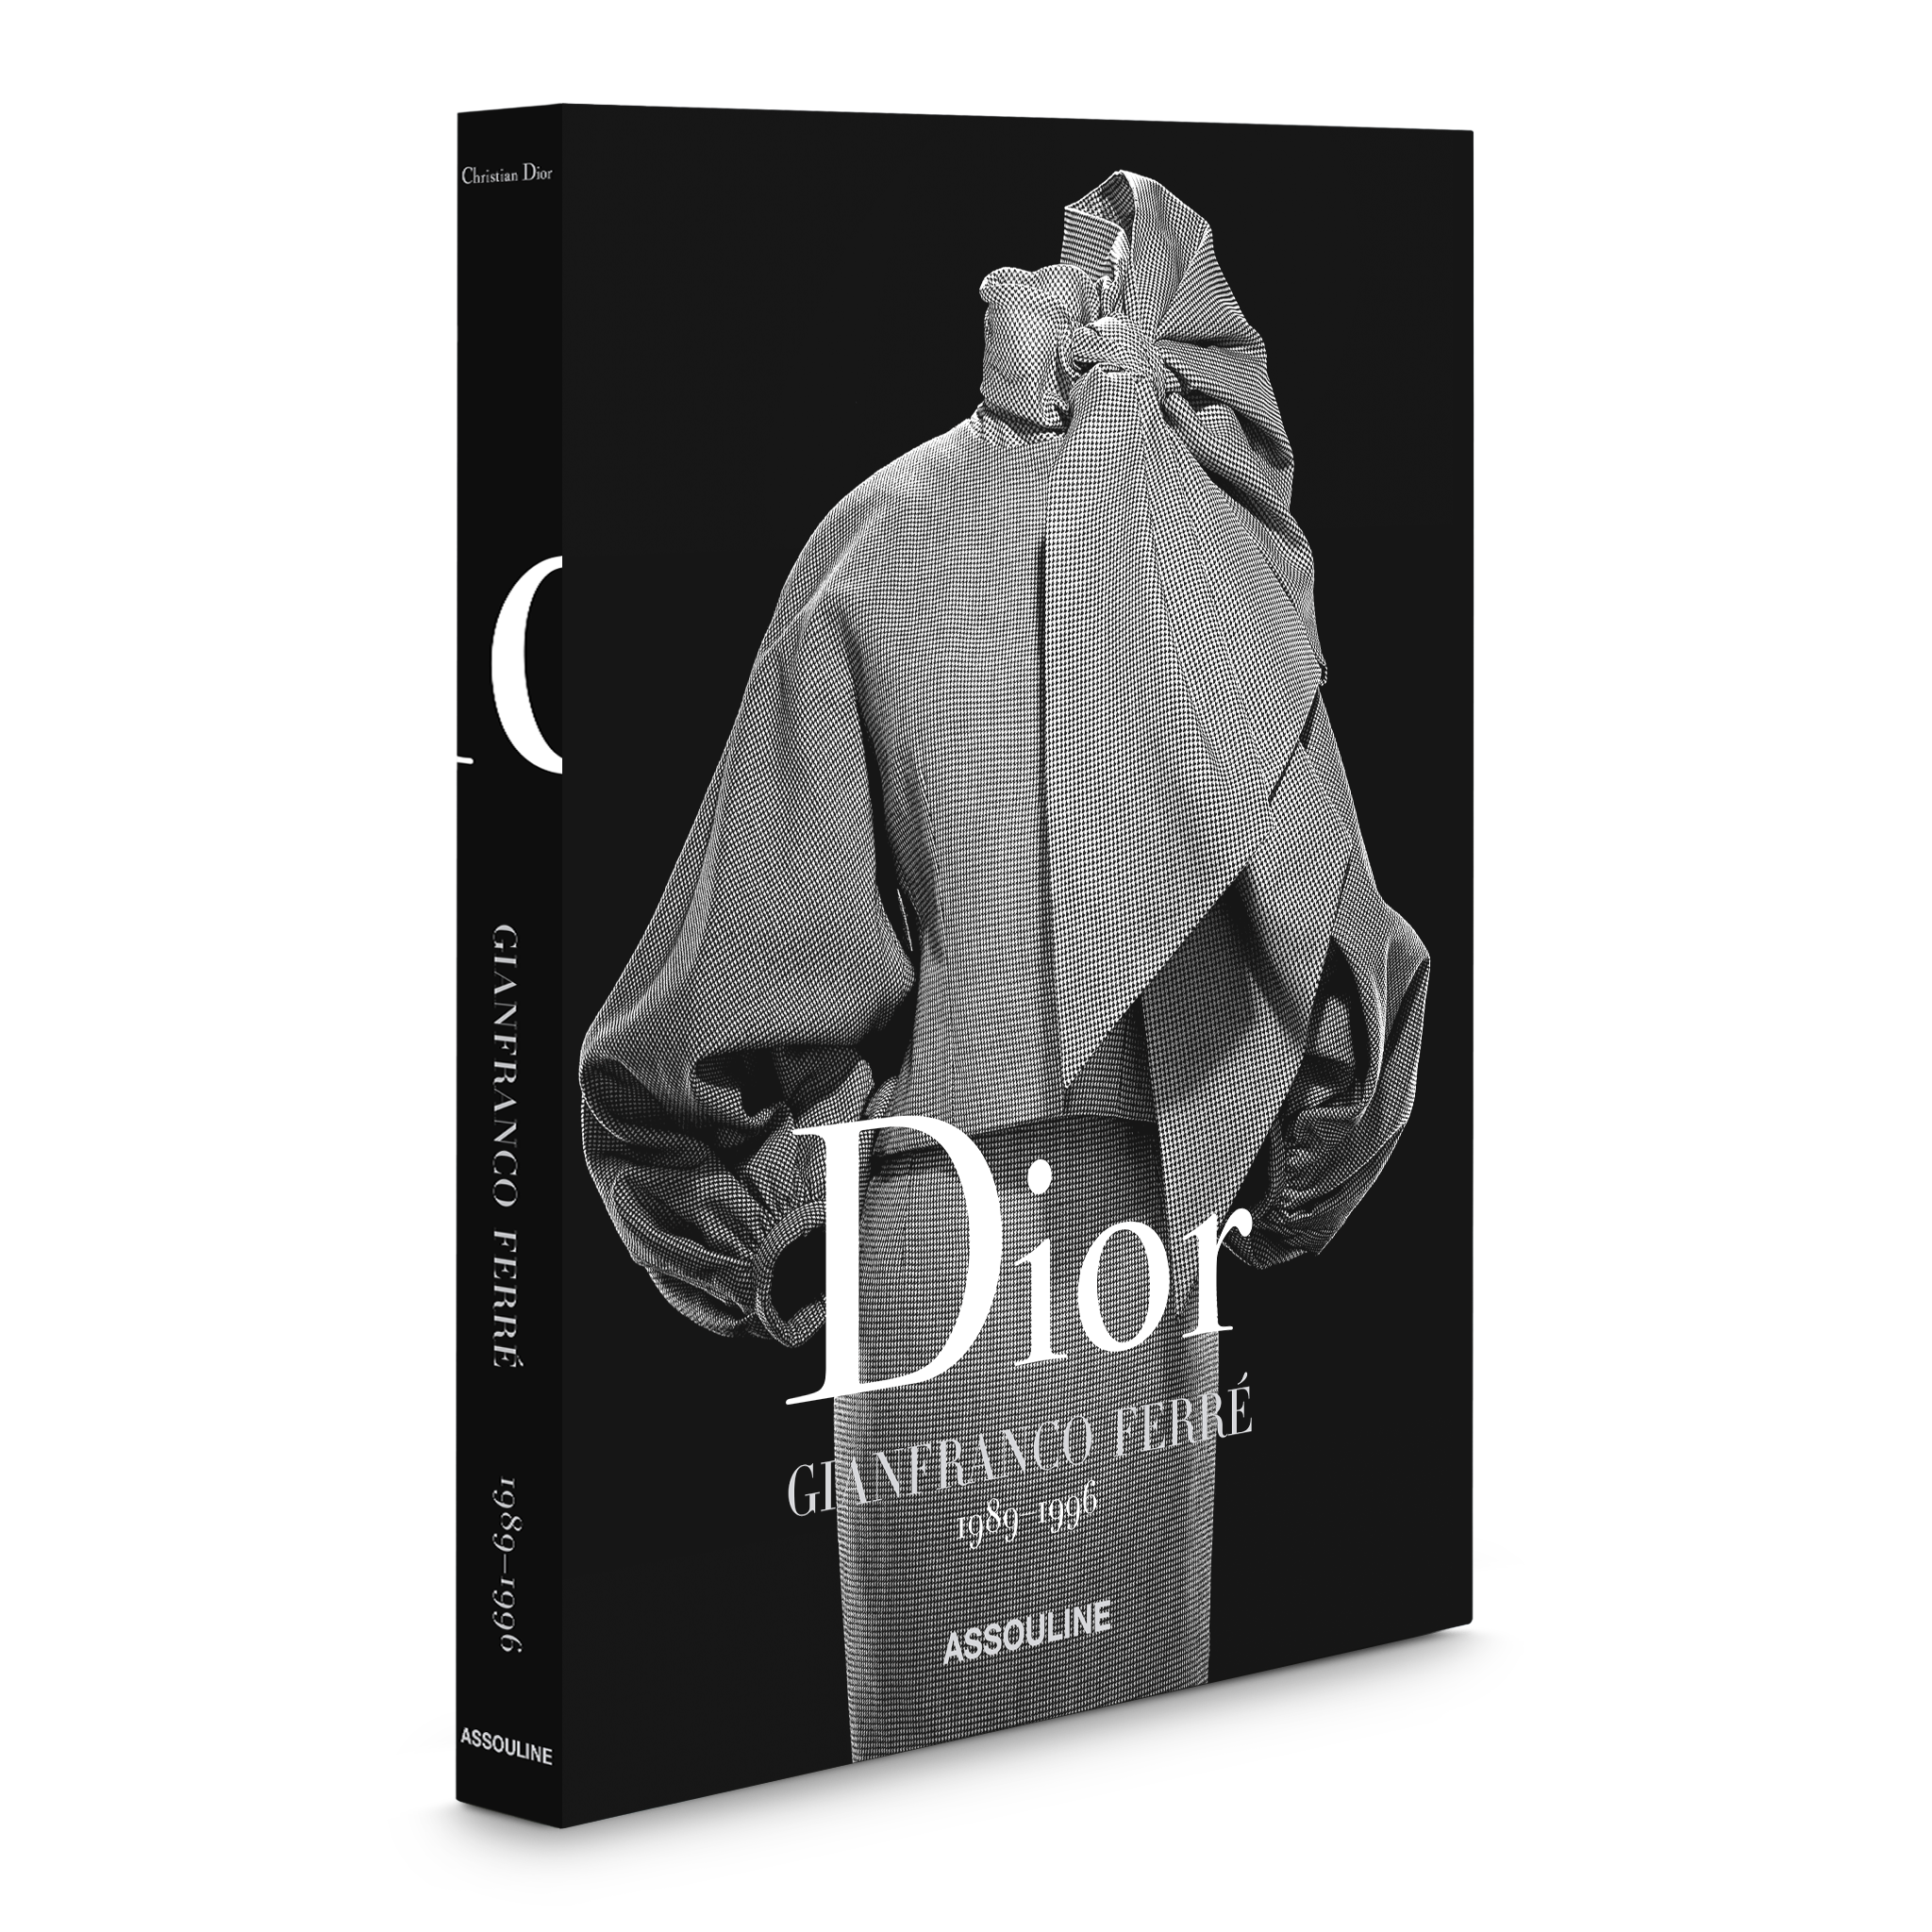 Assouline Books Dior by Gianfranco Ferré